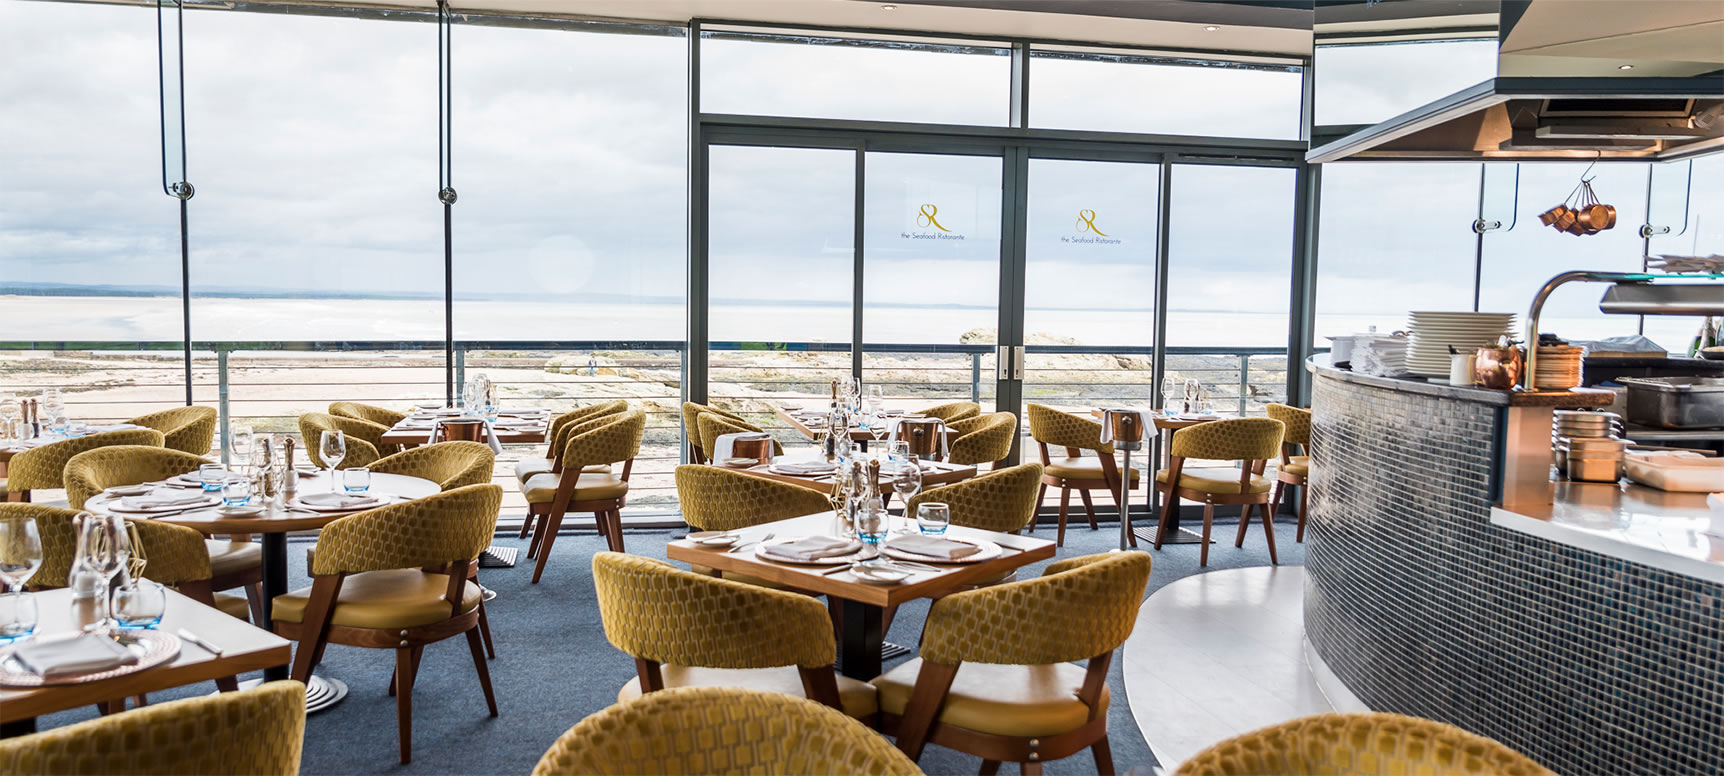 The Seafoood Ristorante St Andrews